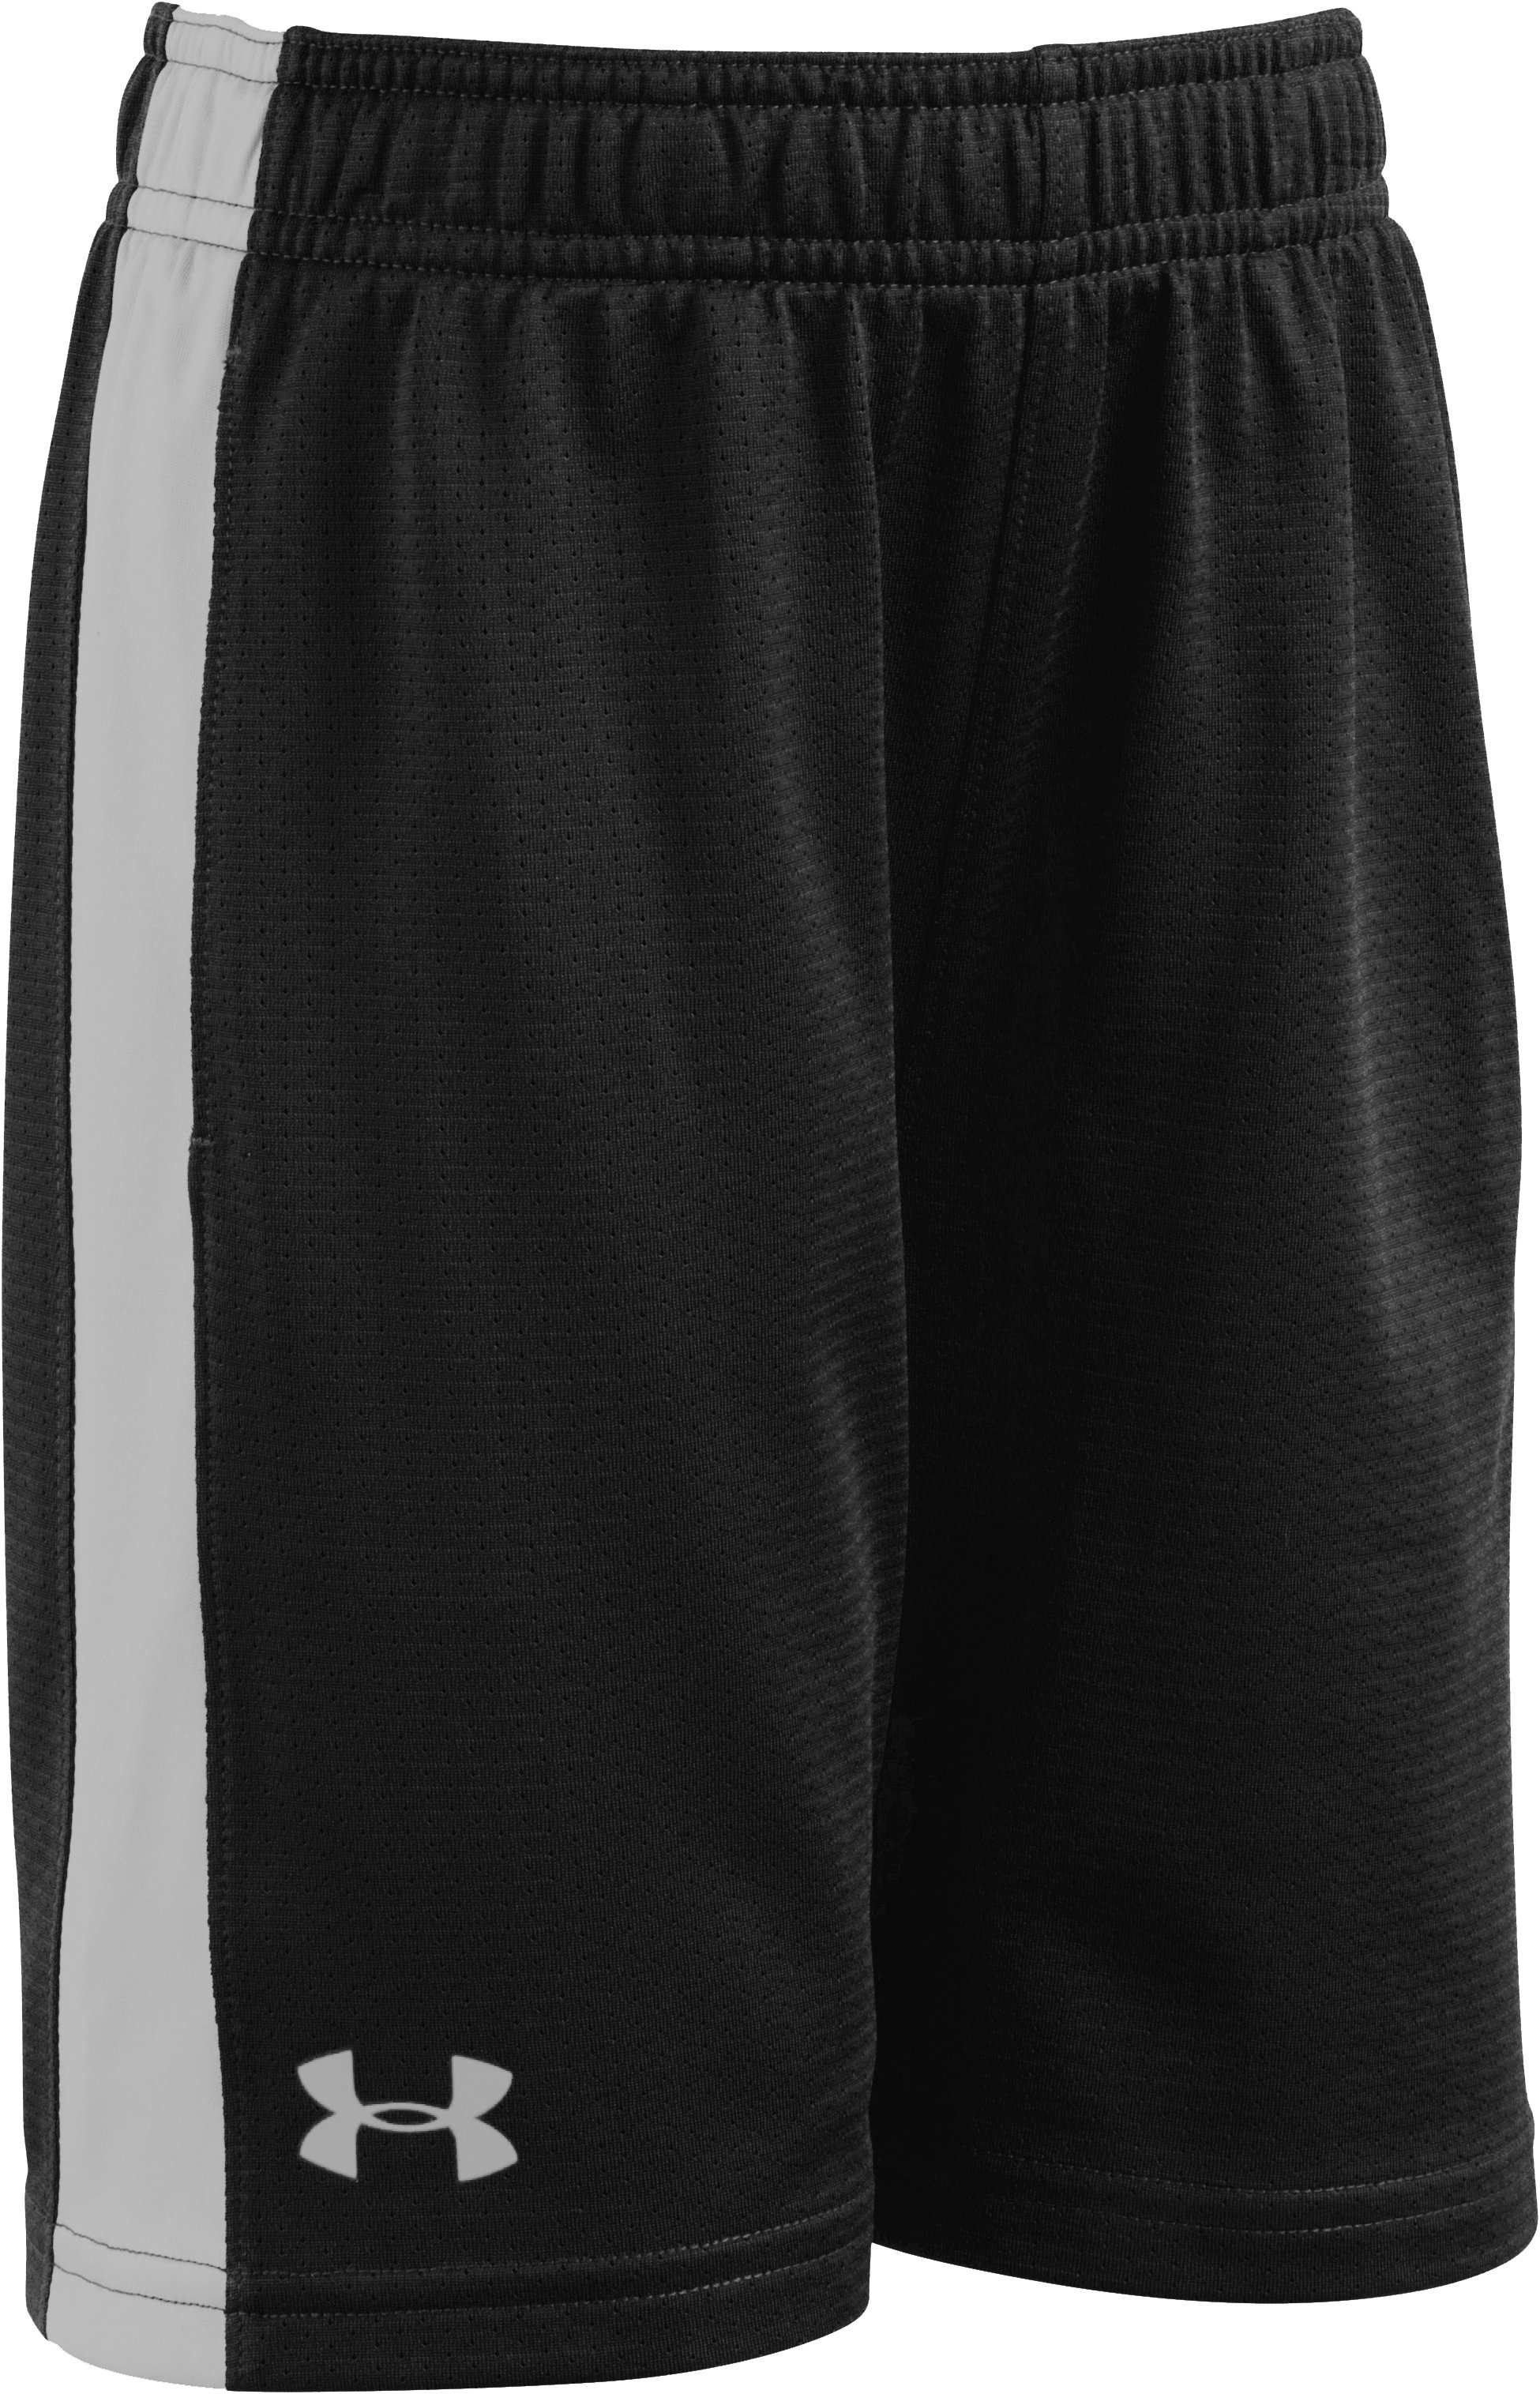 Boys' Toddler UA Mesh Eliminator Shorts, Black , Laydown